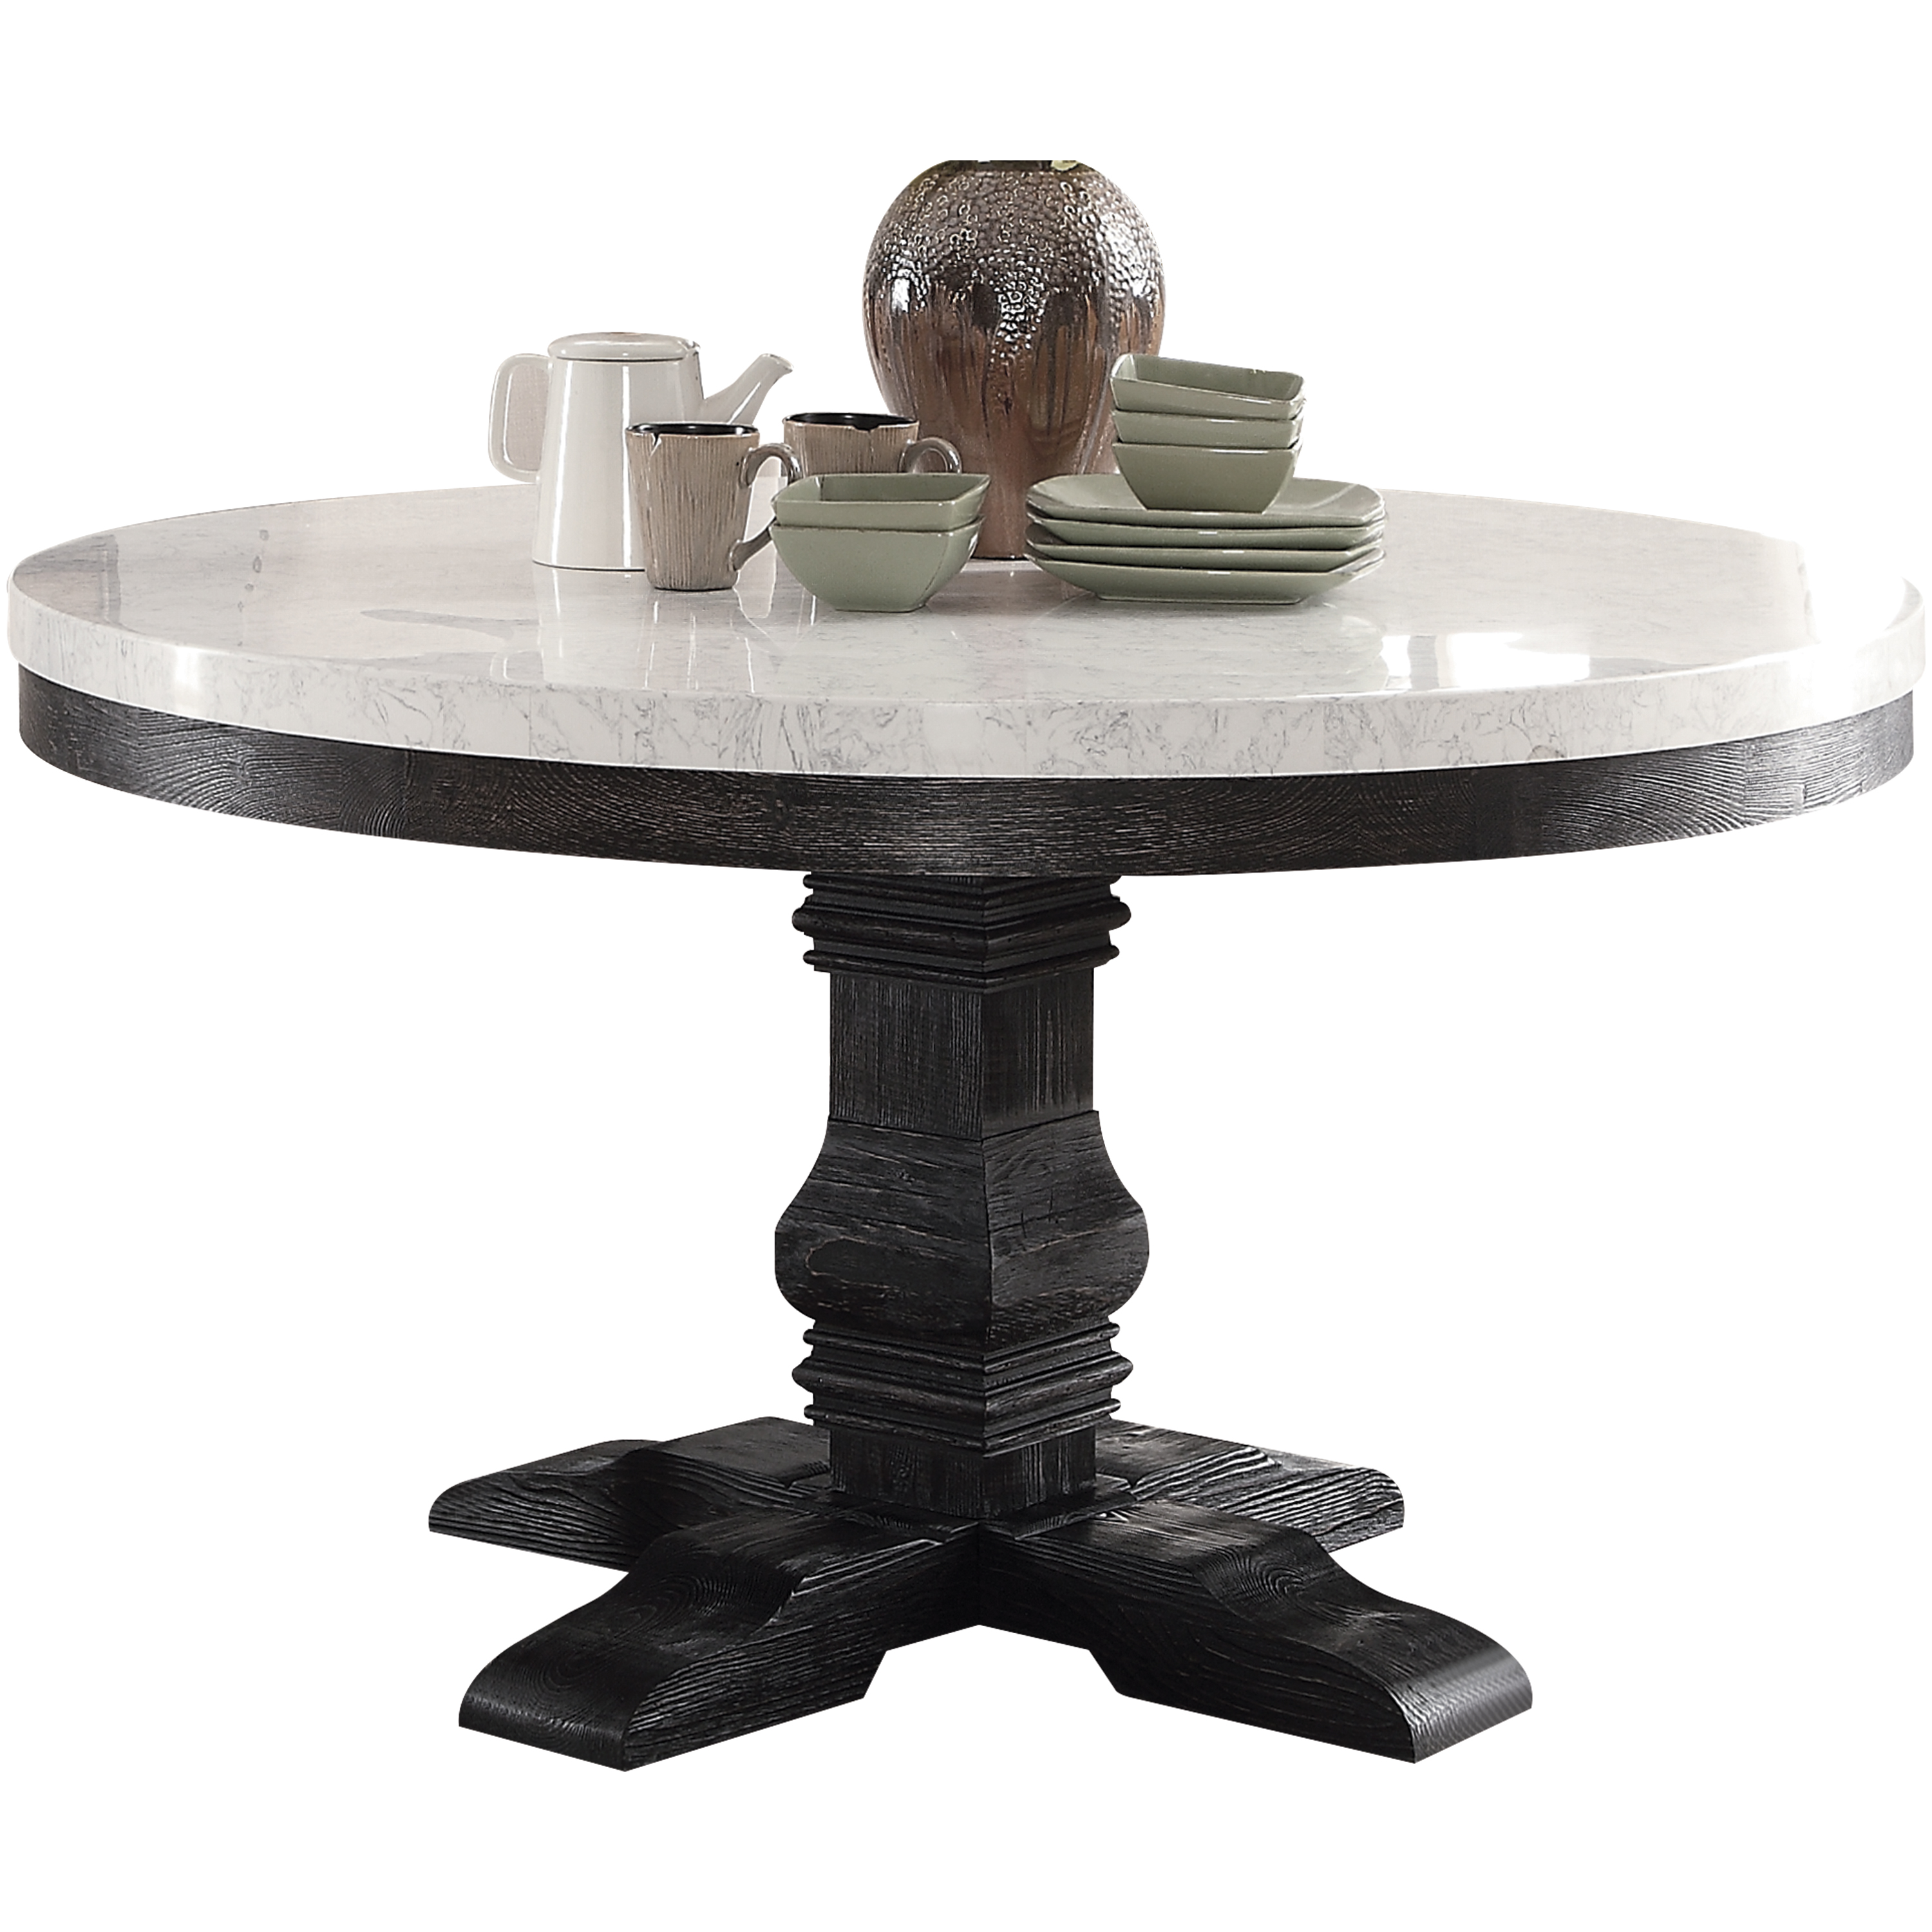 ACME Nolan Pedestal Round Dining Table, White Marble & Weathered Black. (Chairs Separately)